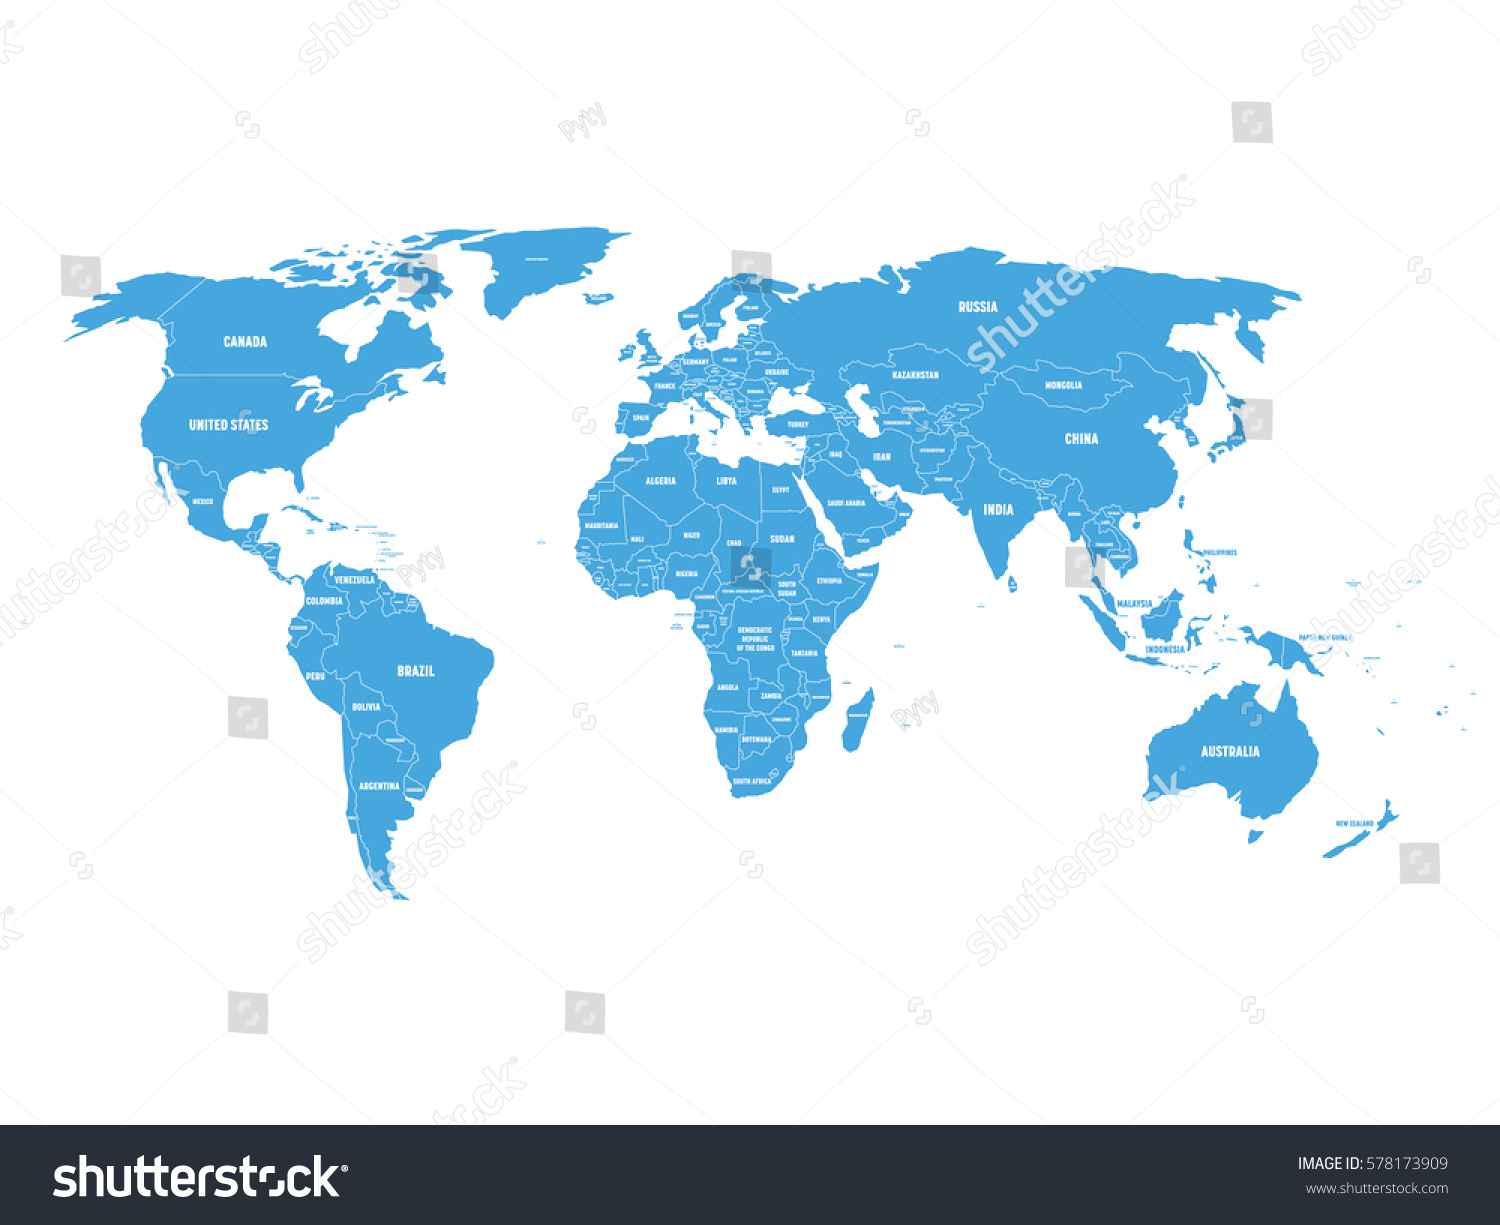 Blue Political World Map Country Borders Stock Vector - World map country labels